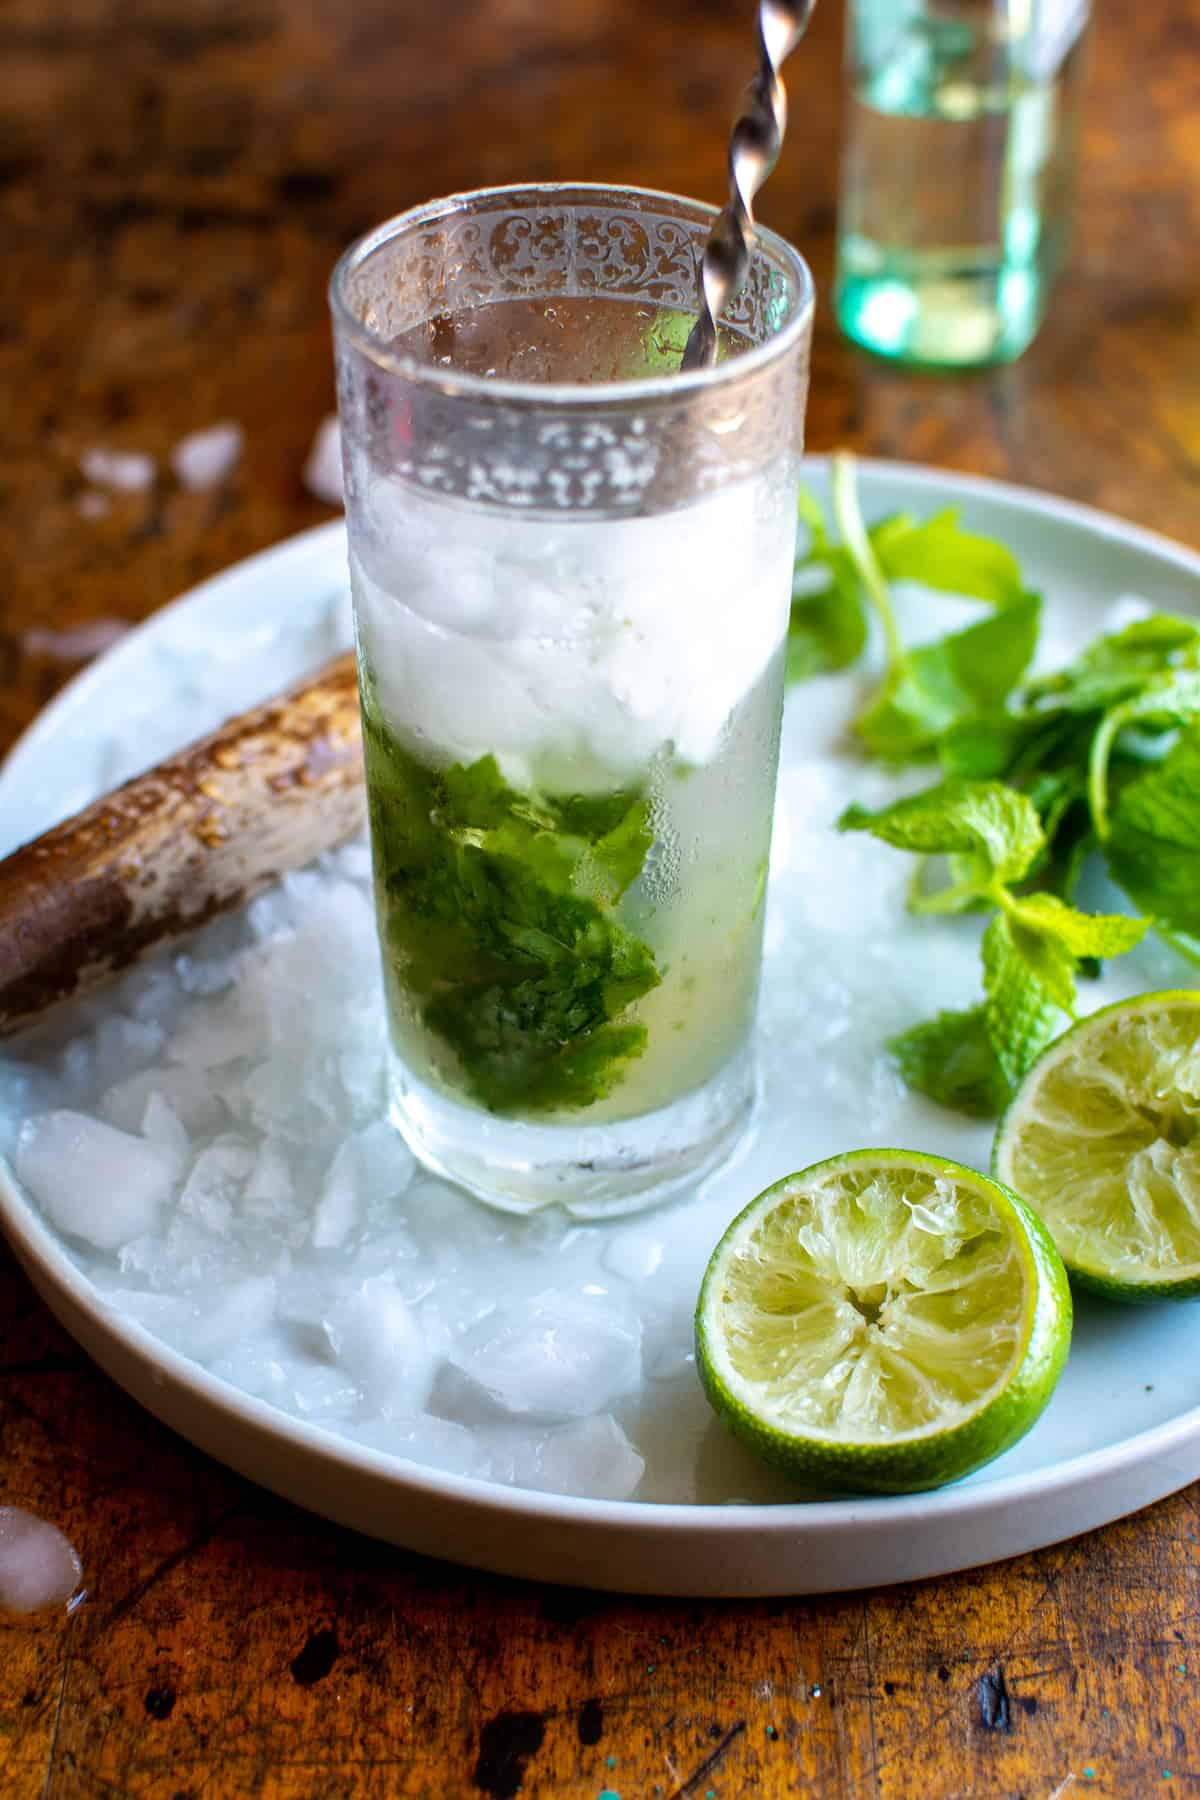 A mojito in a tall glass filled halfway with ice sitting on a white plate next to a lime that has been squeezed.